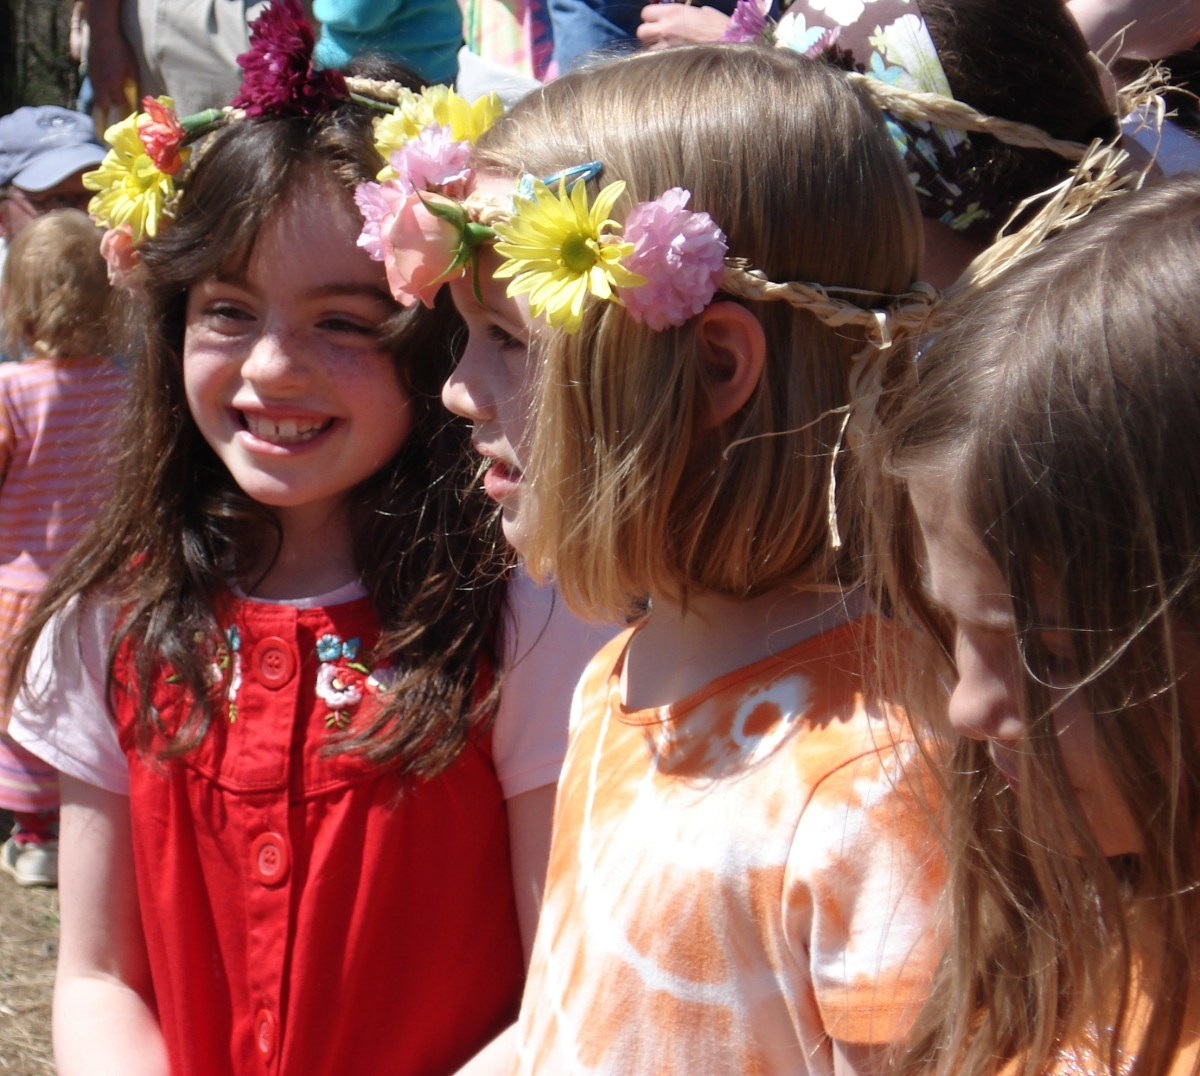 Maypole celebrations are part of the typical waldorf curriculum, incorporating history, dance and community. Flower garlands are made and worn by the students.